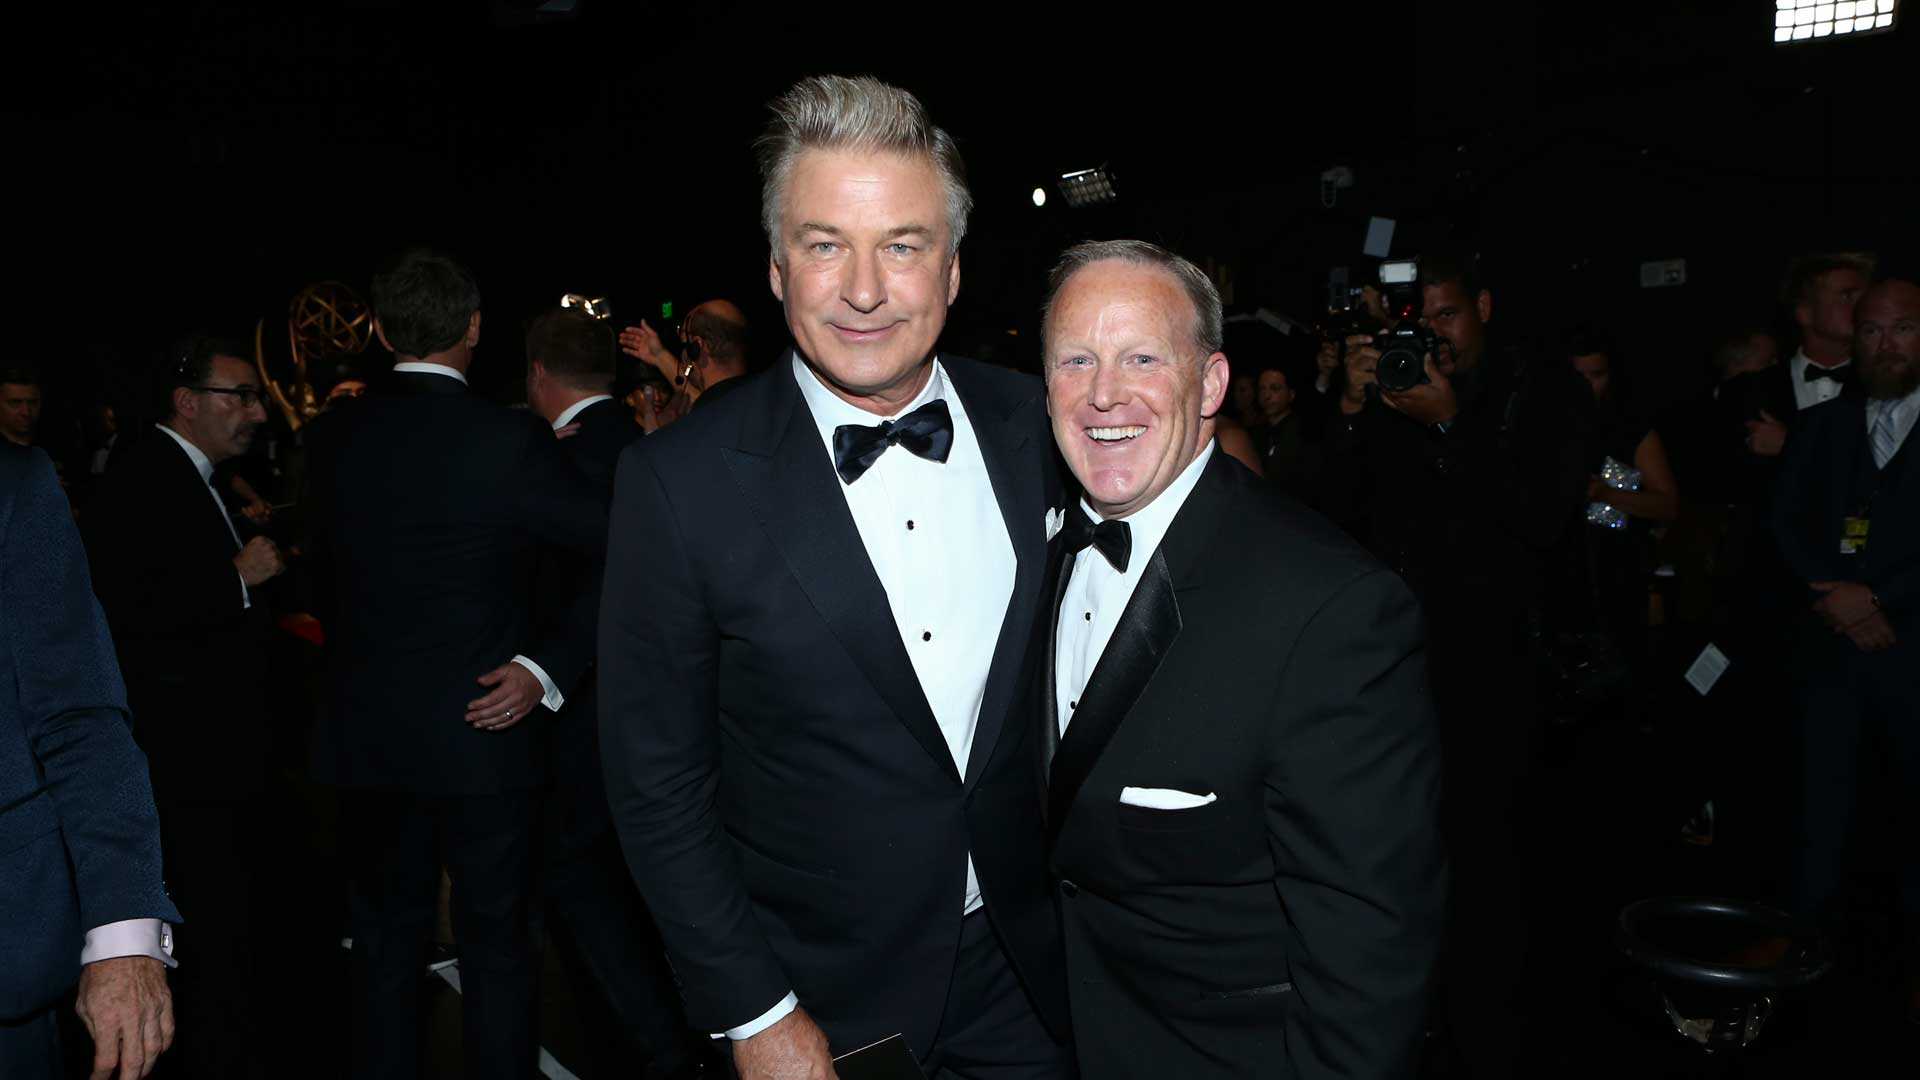 Alec Baldwin stops for a photo-op with former White House Press Secretary Sean Spicer.